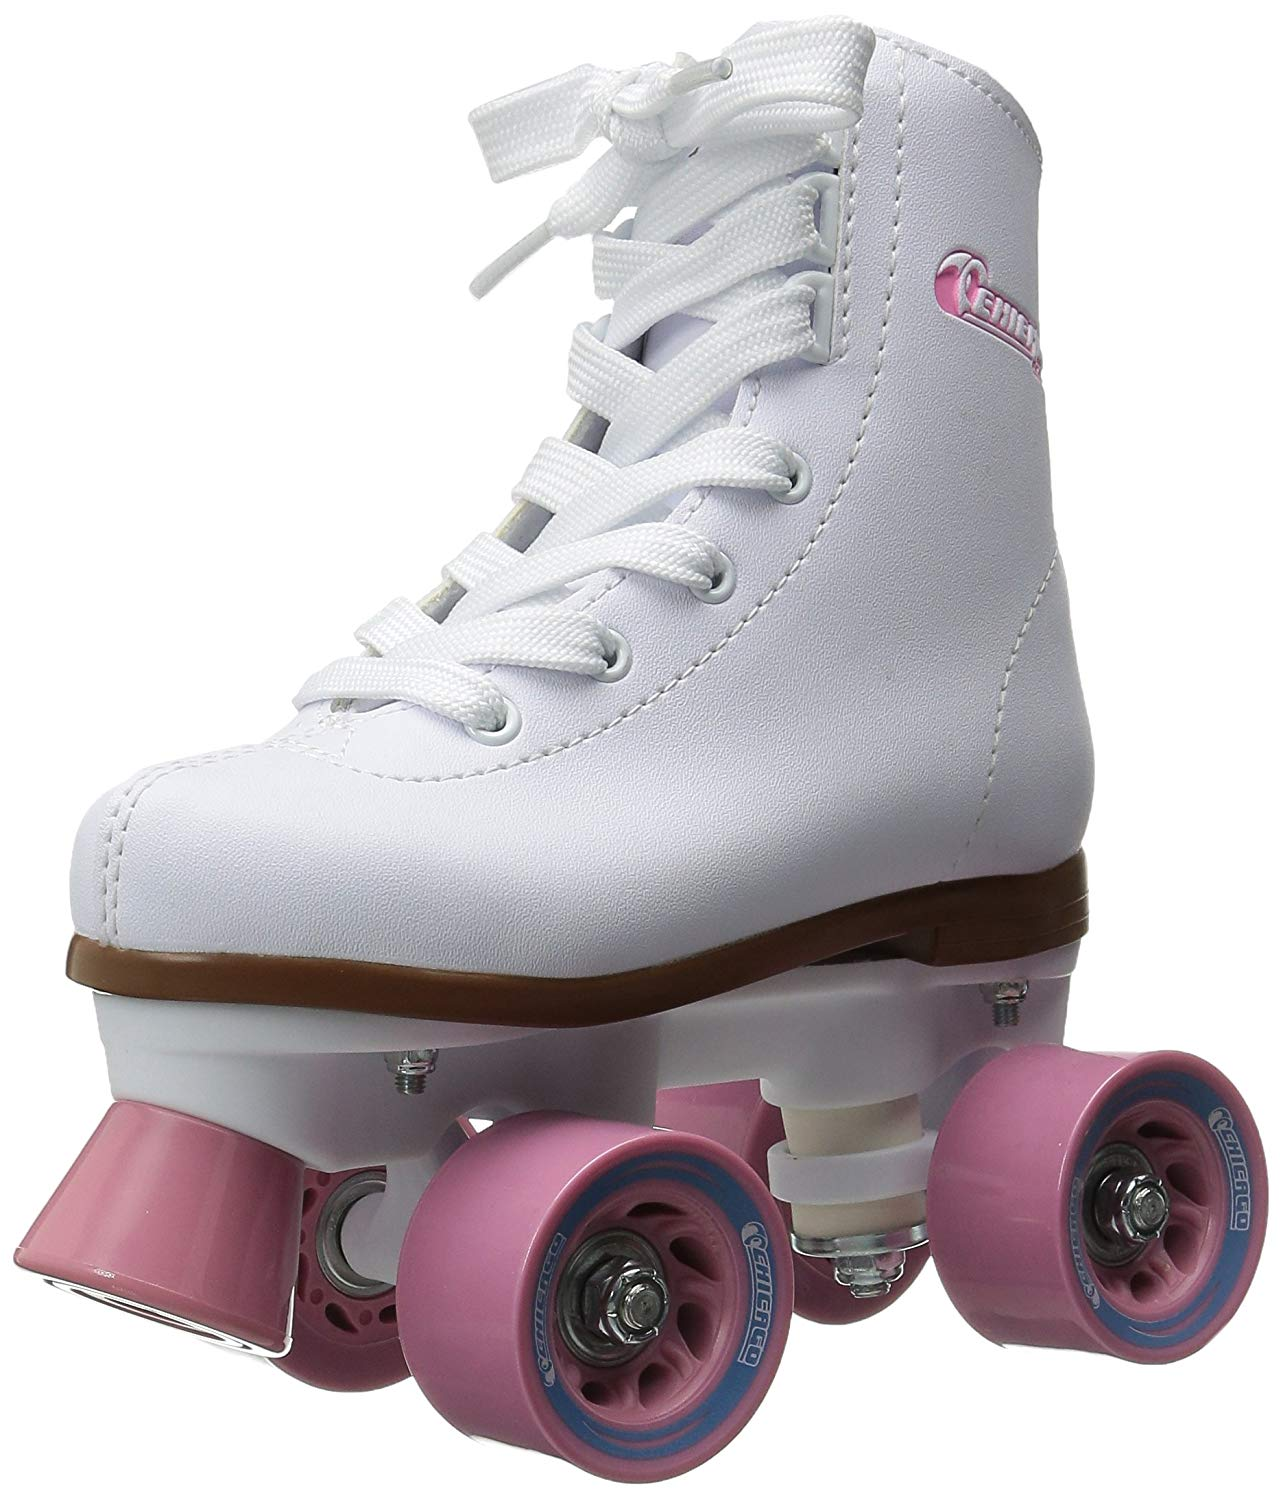 Chicago Girl's Classic Roller Skates | Adjustable Roller Skate Shoes for kids